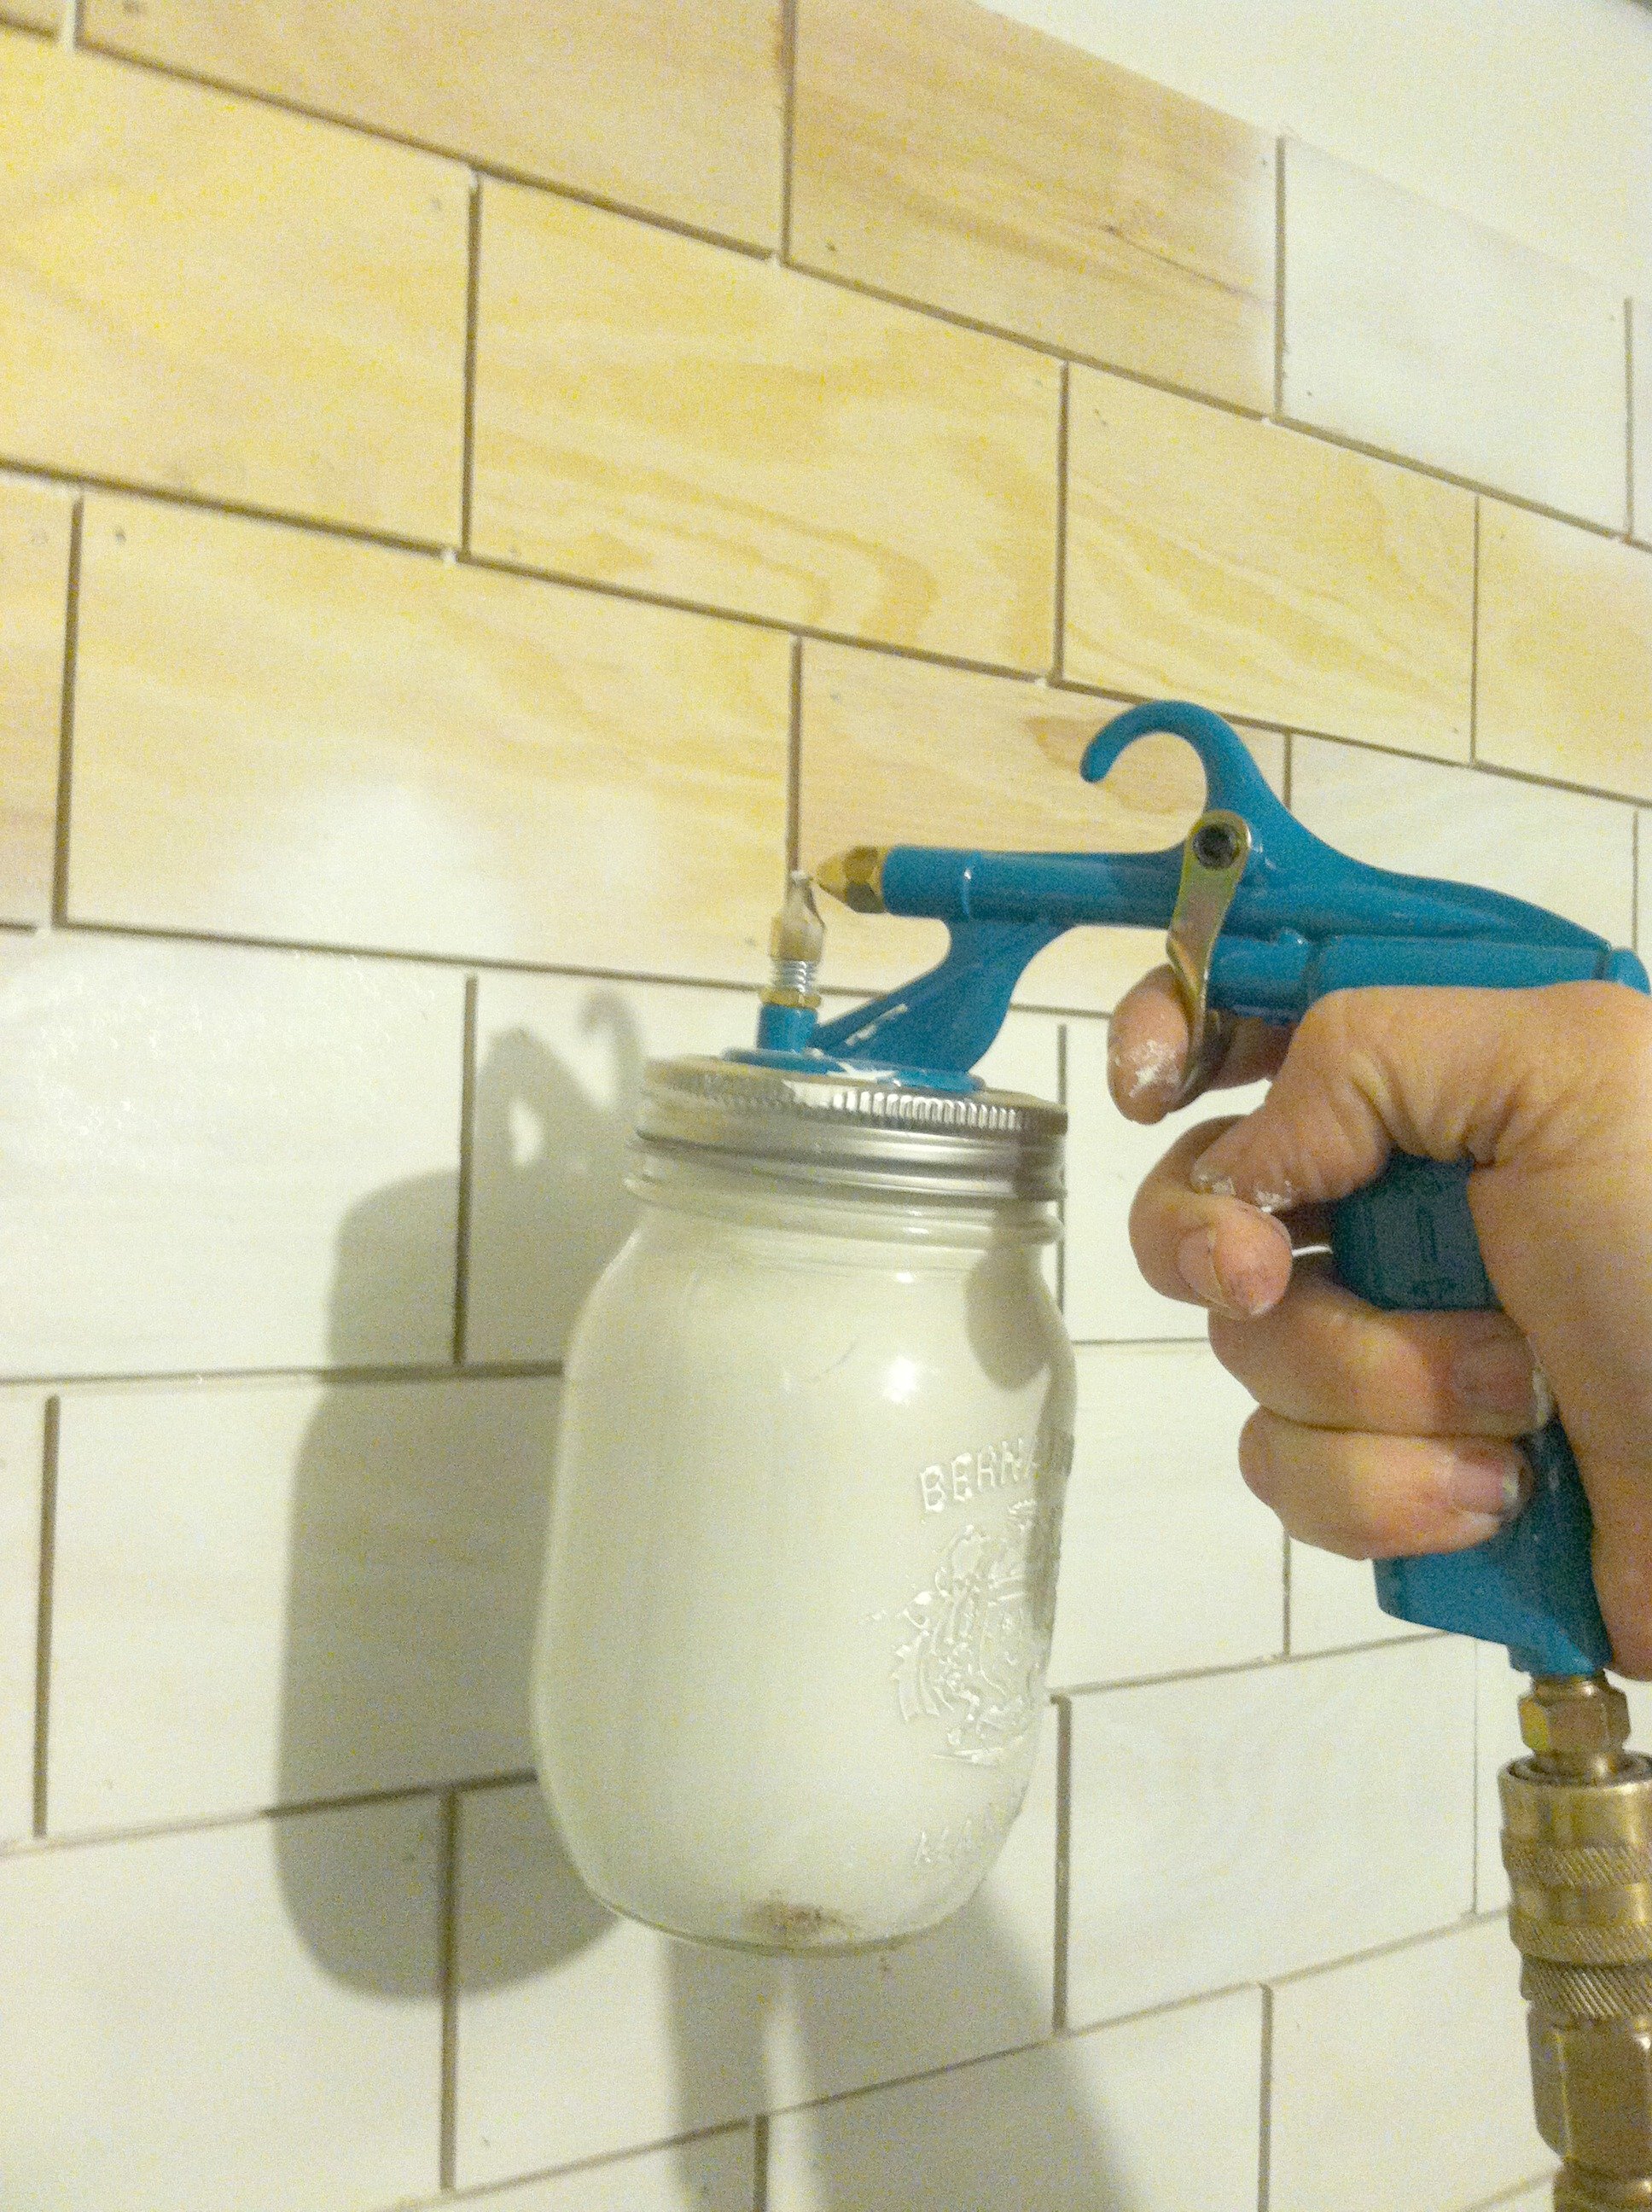 Spray Paint For Tiles In Bathroom